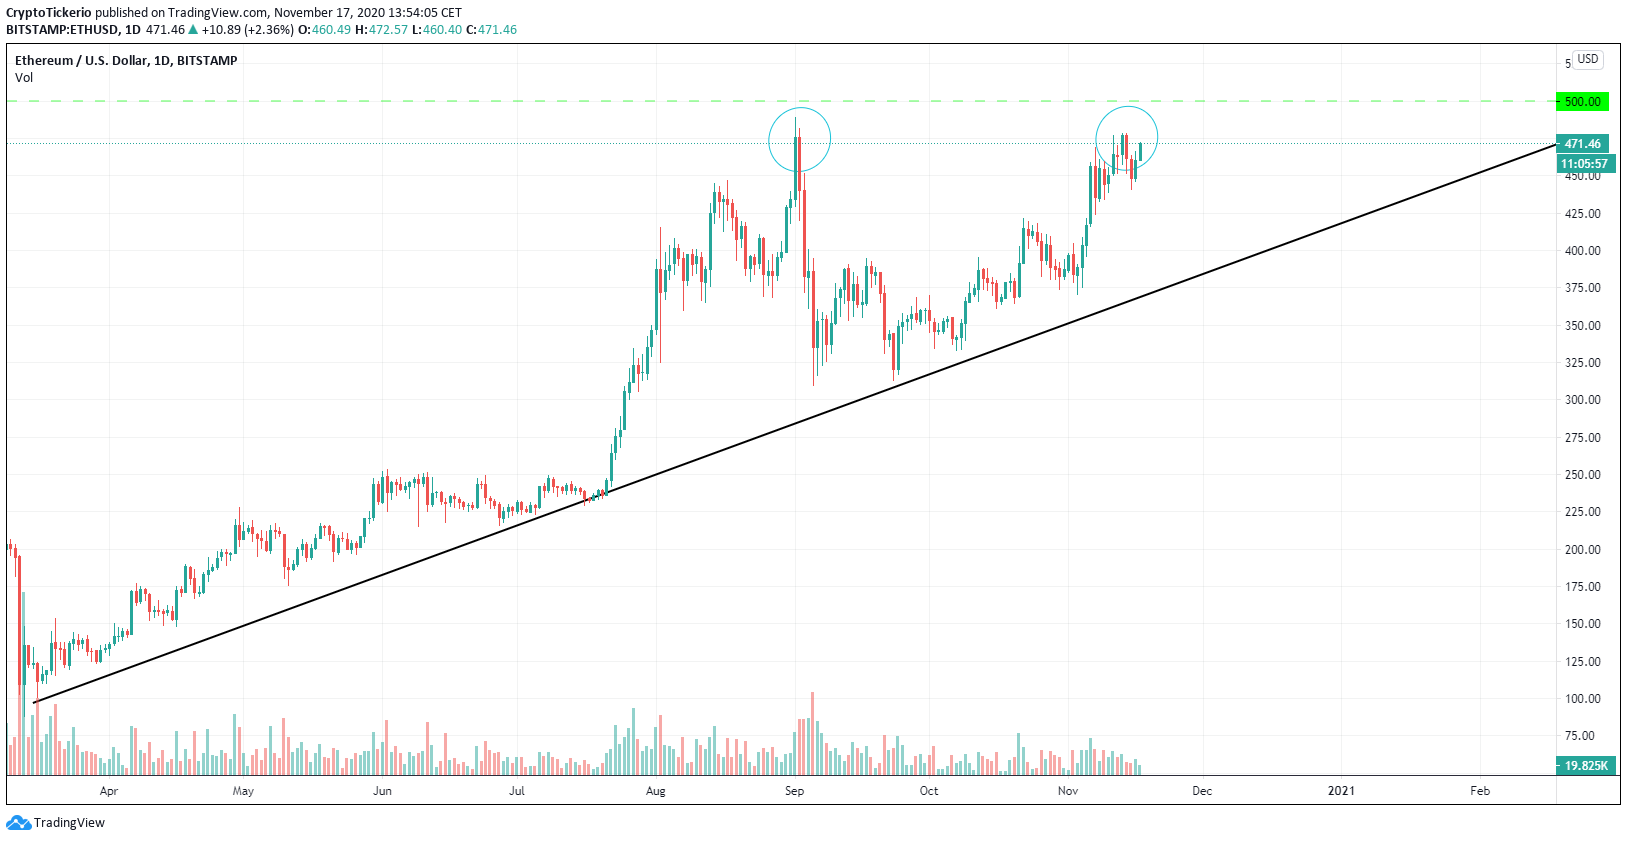 Uptrend showing ETH prices back to all-time highs